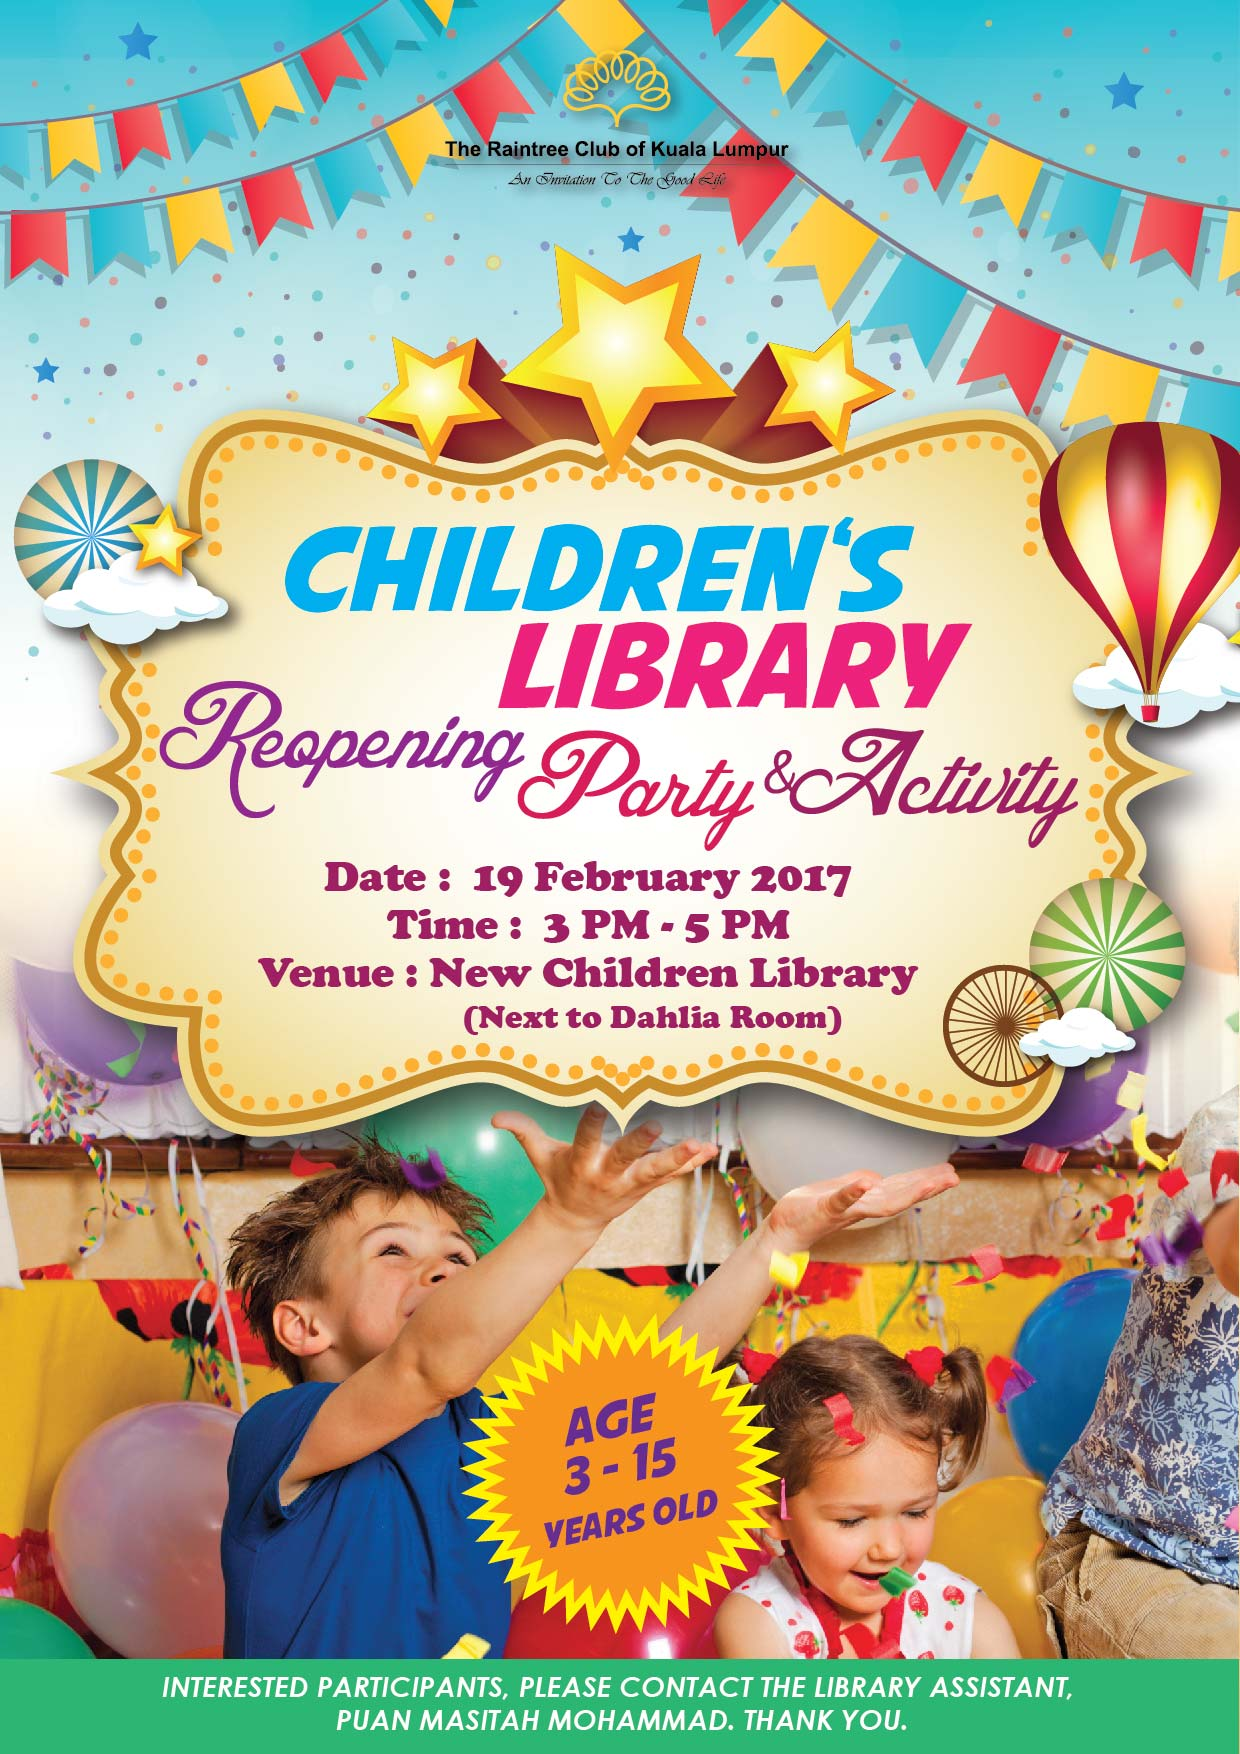 1_Children Library Reopening Poster-01